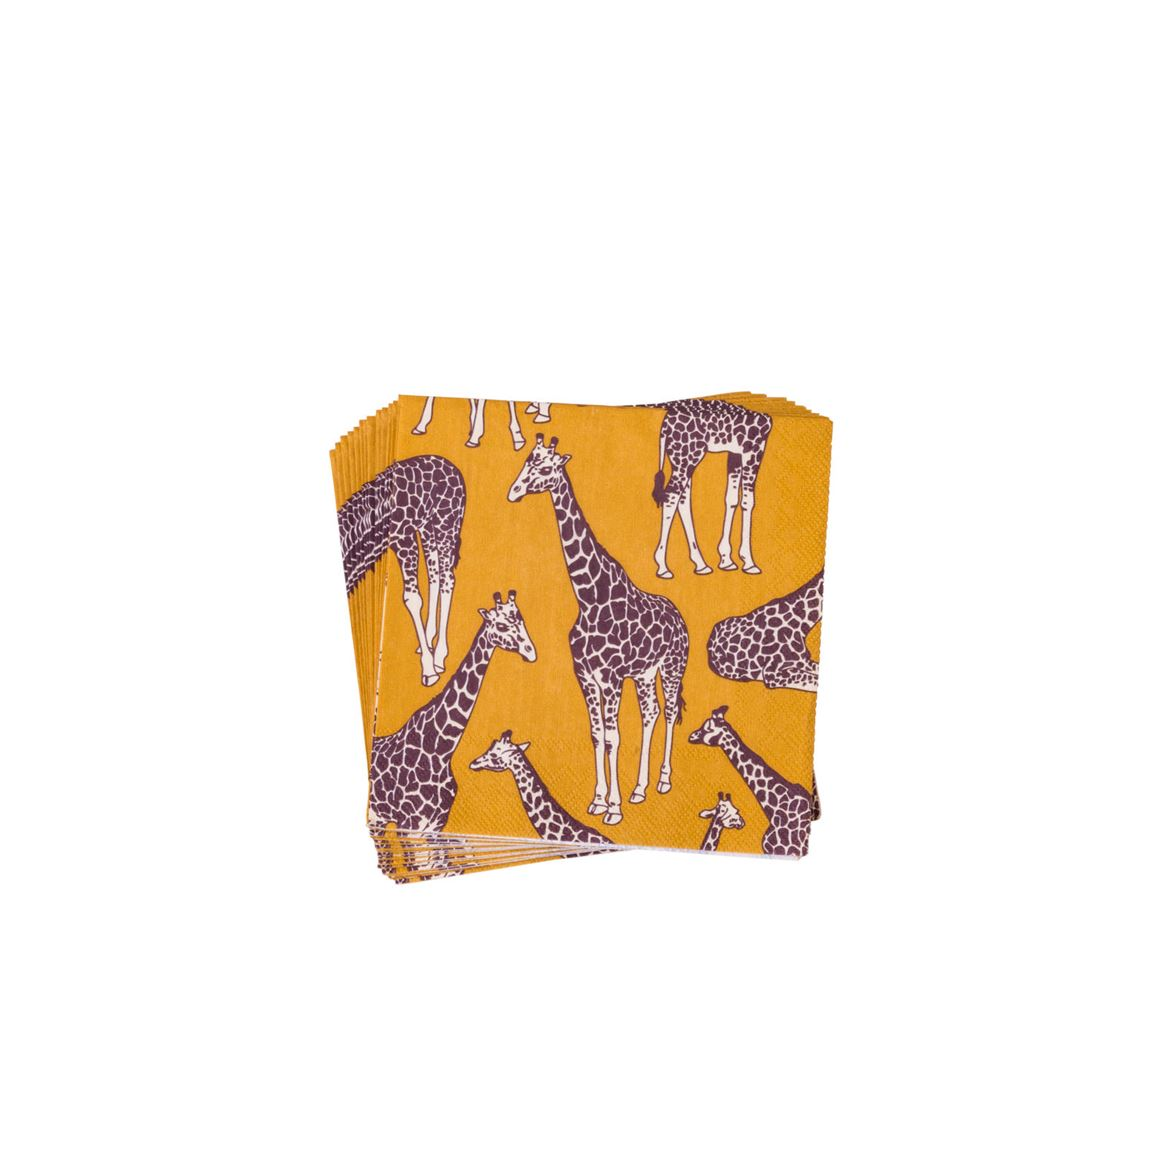 SAFARI GIRAFFE  Set van 20 servetten multicolor B 25 x L 25 cm_safari-giraffe--set-van-20-servetten-multicolor-b-25-x-l-25-cm